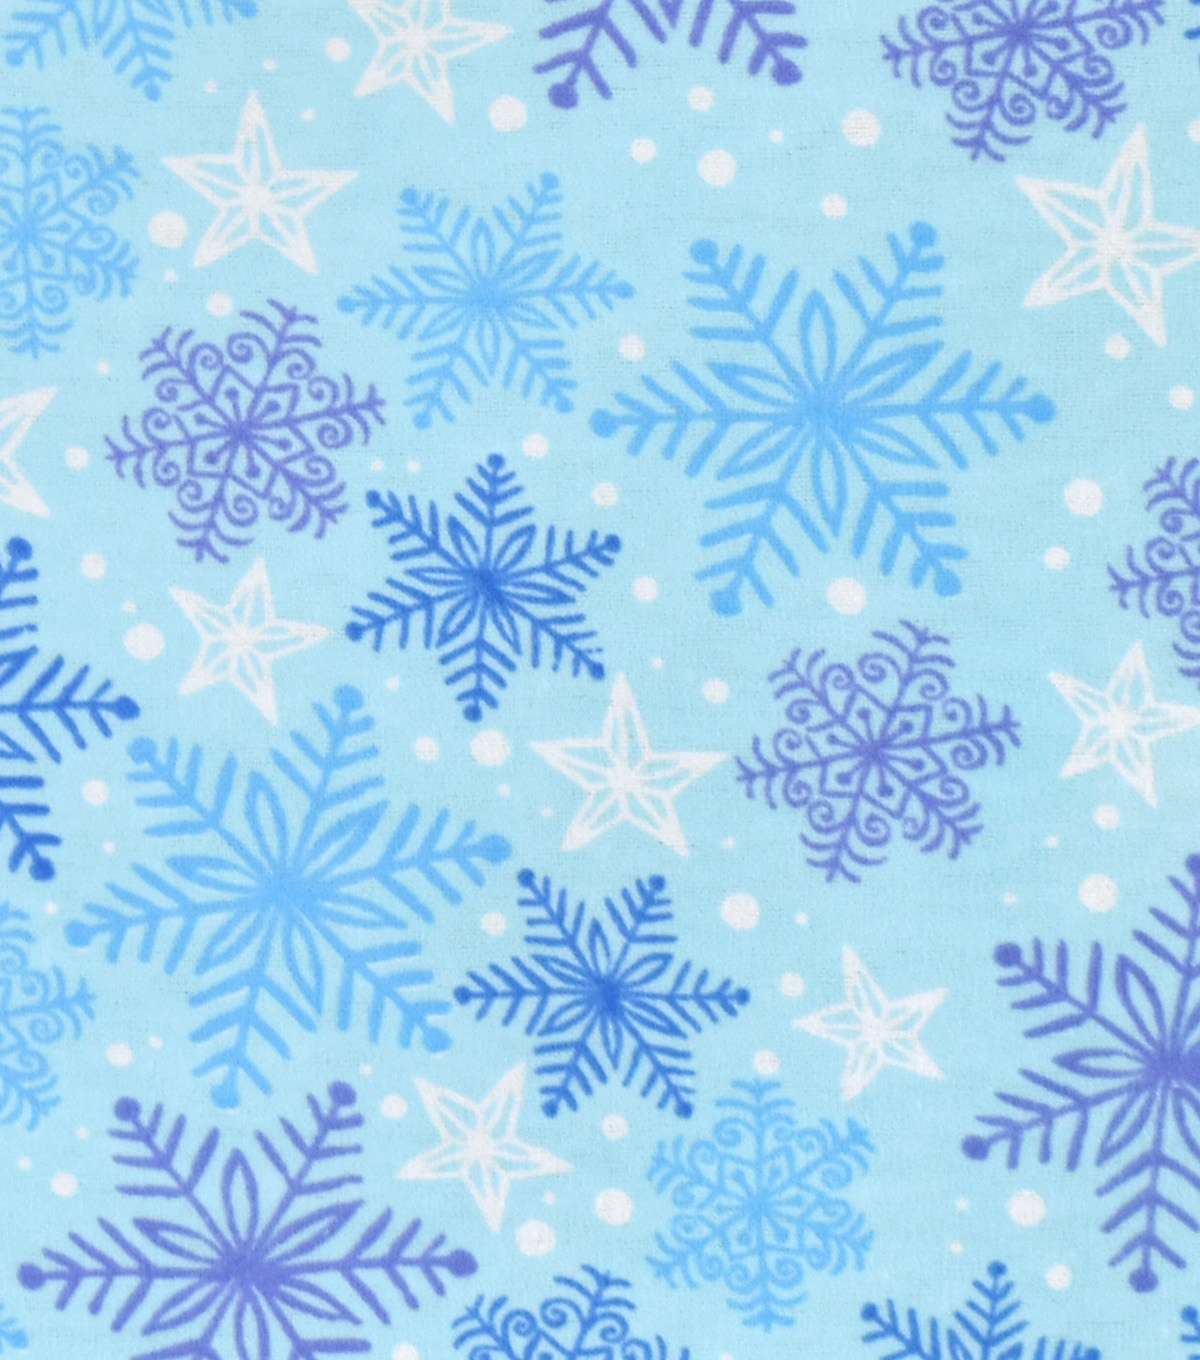 Snuggle Flannel Fabric -Blue & Purple Snowflakes